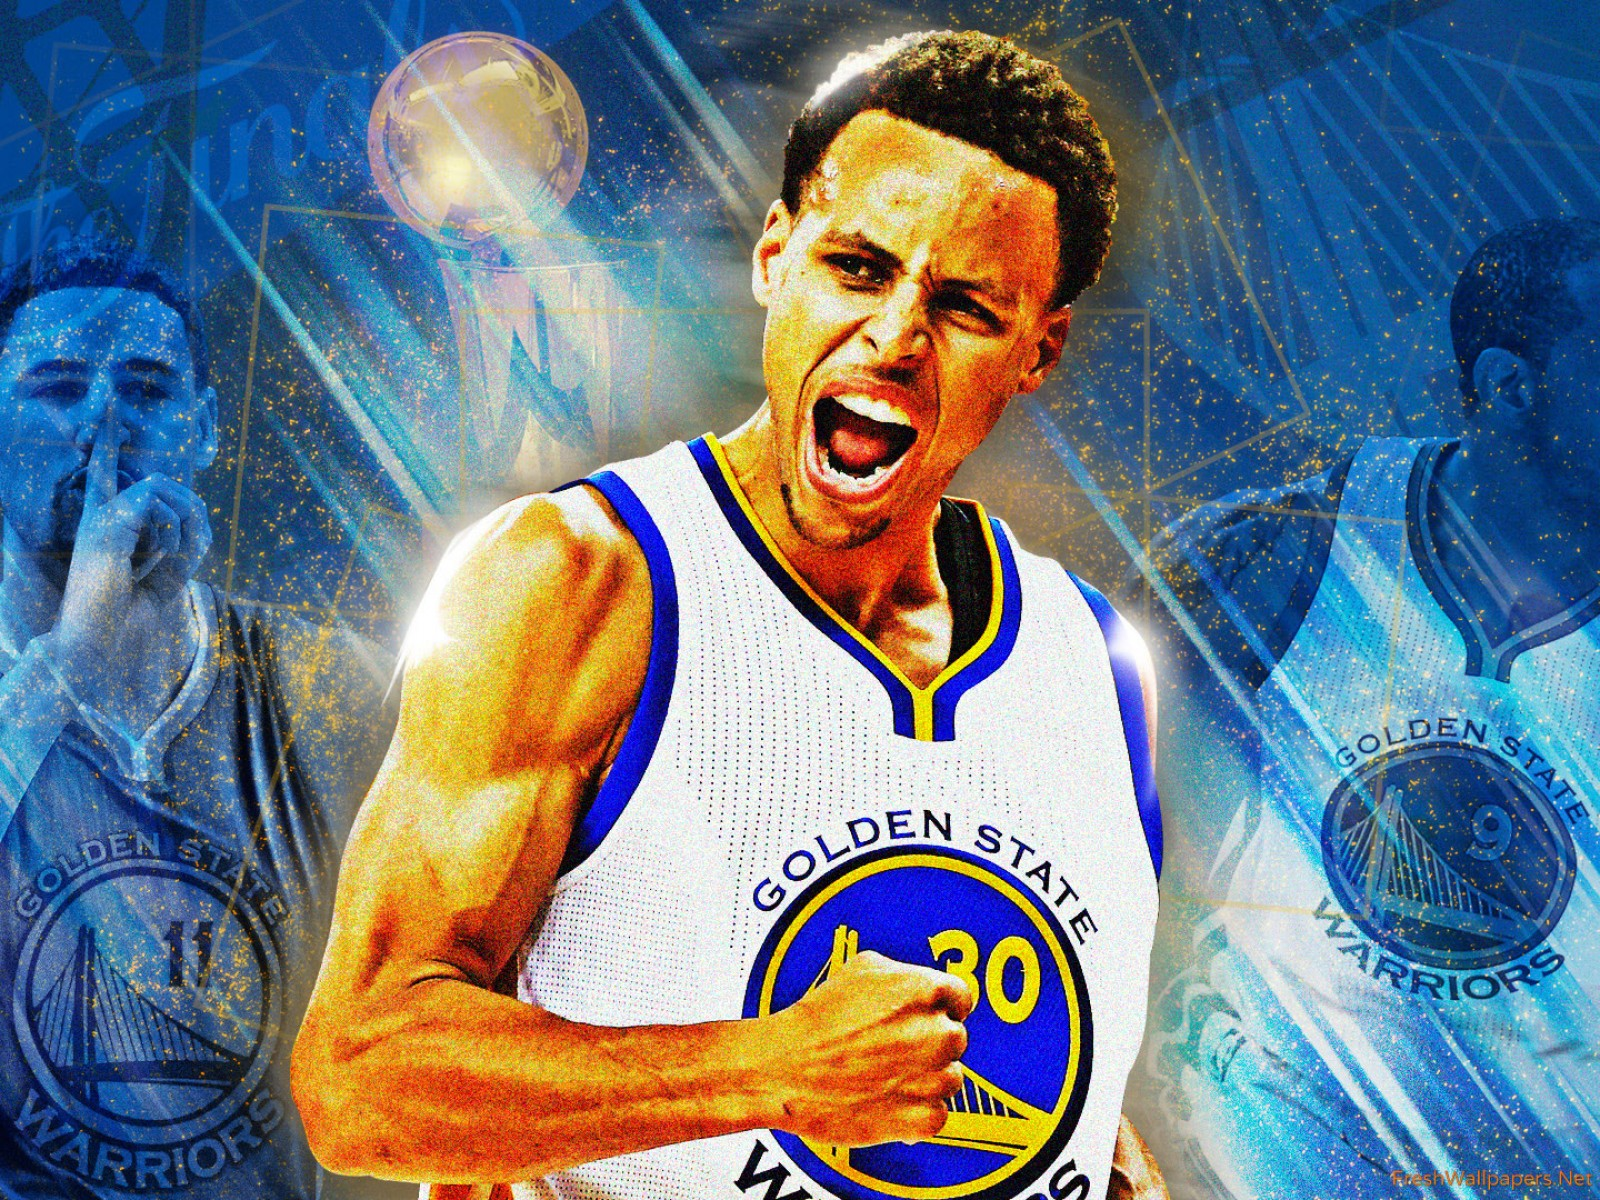 Golden State Warriors Finals Trophy   wallpaper 1600x1200